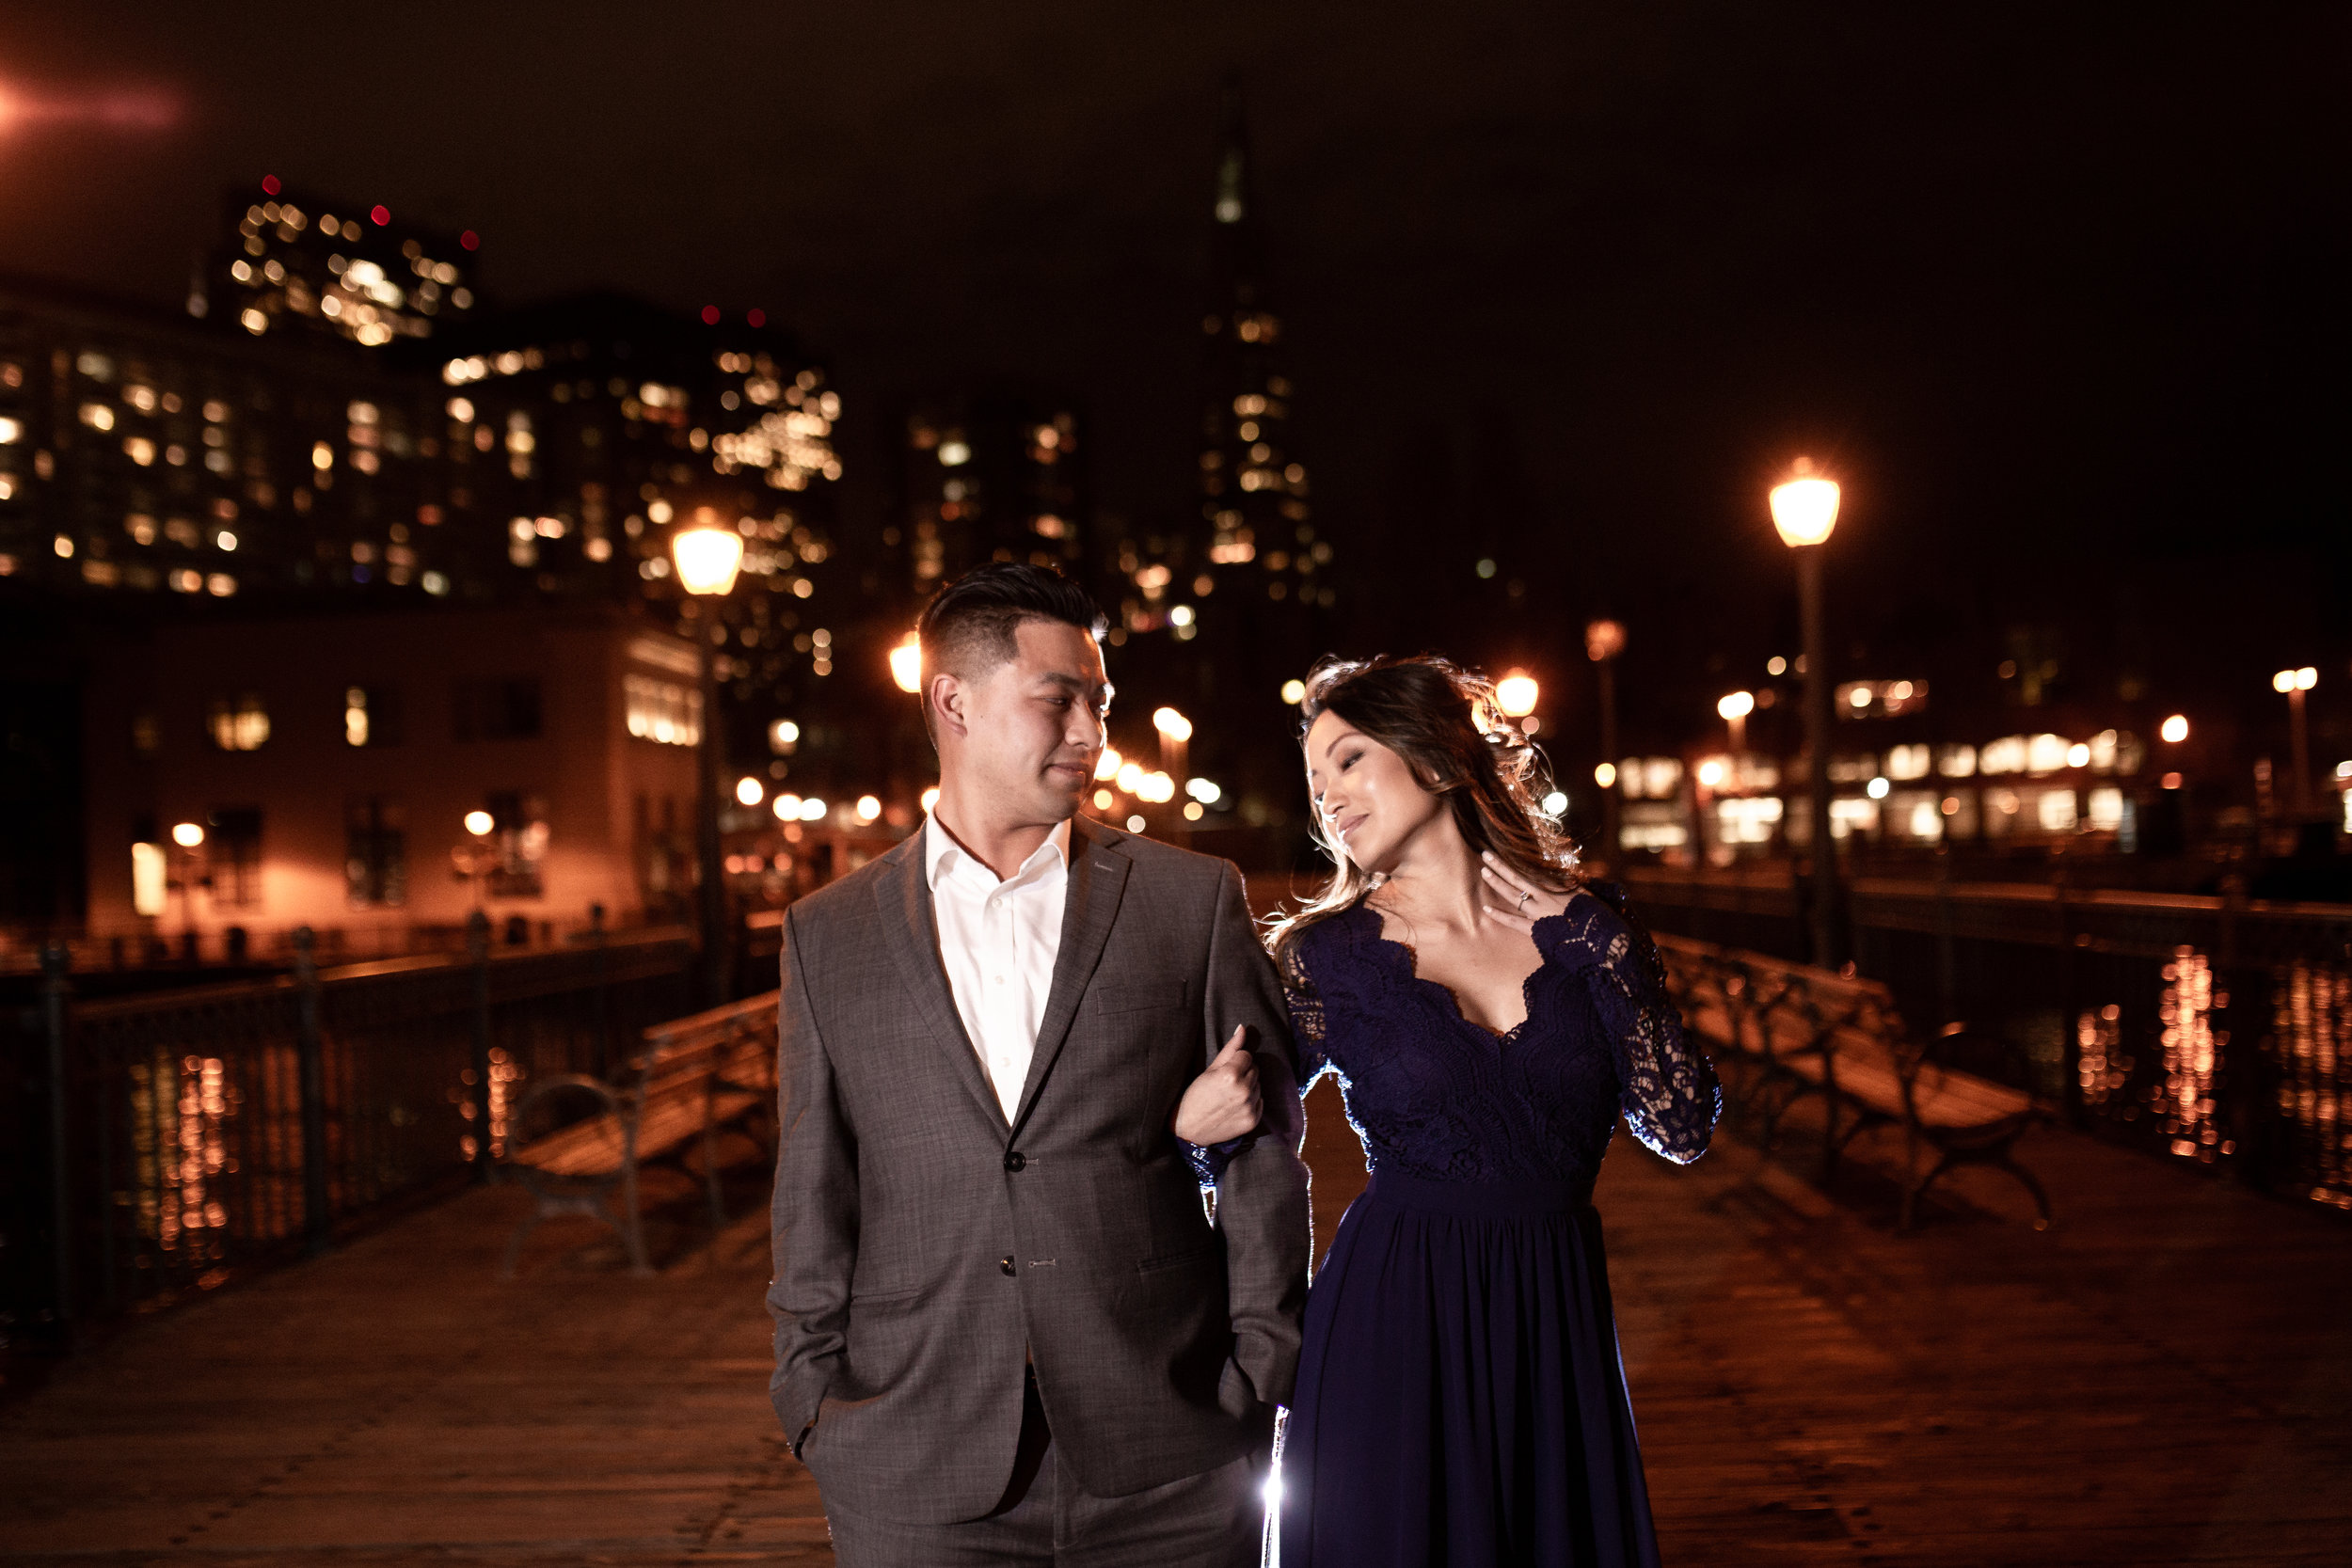 San-Francisco-Engagement-Session-Tara-Nichole-Photo-70.jpg